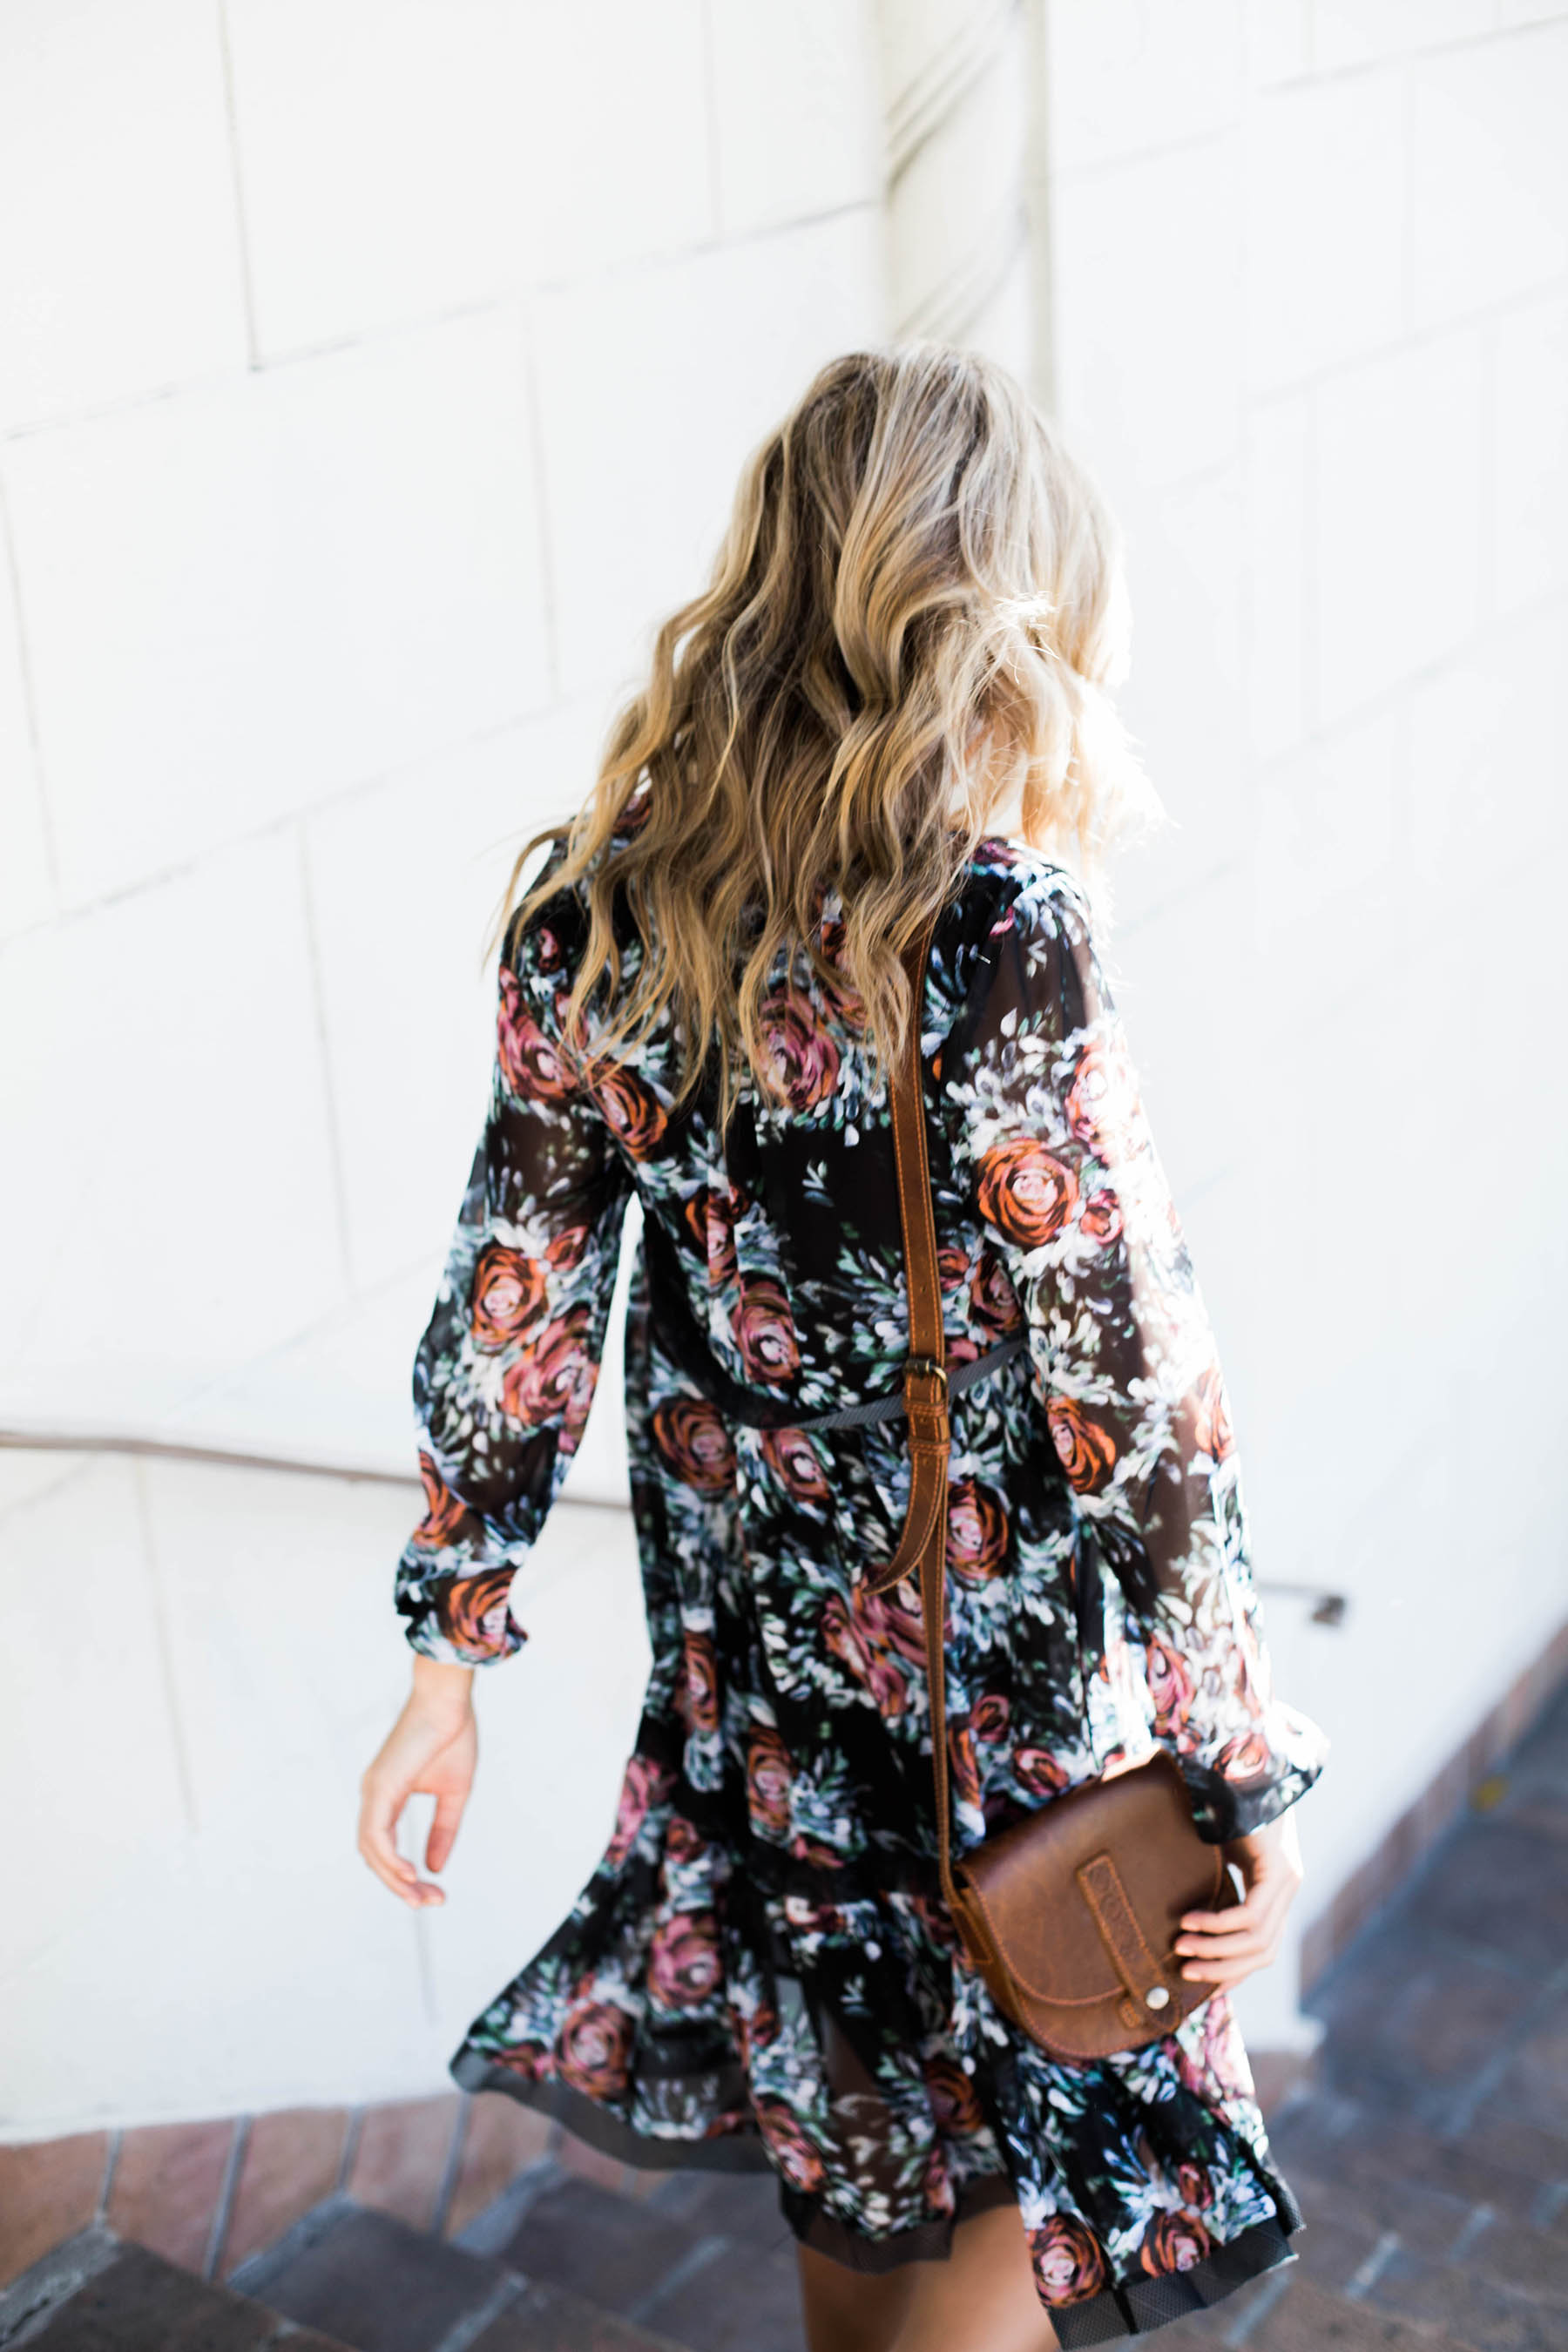 Amanda Holstein in anthropologie floral swing dress and Urban Outfitters crossbody bag